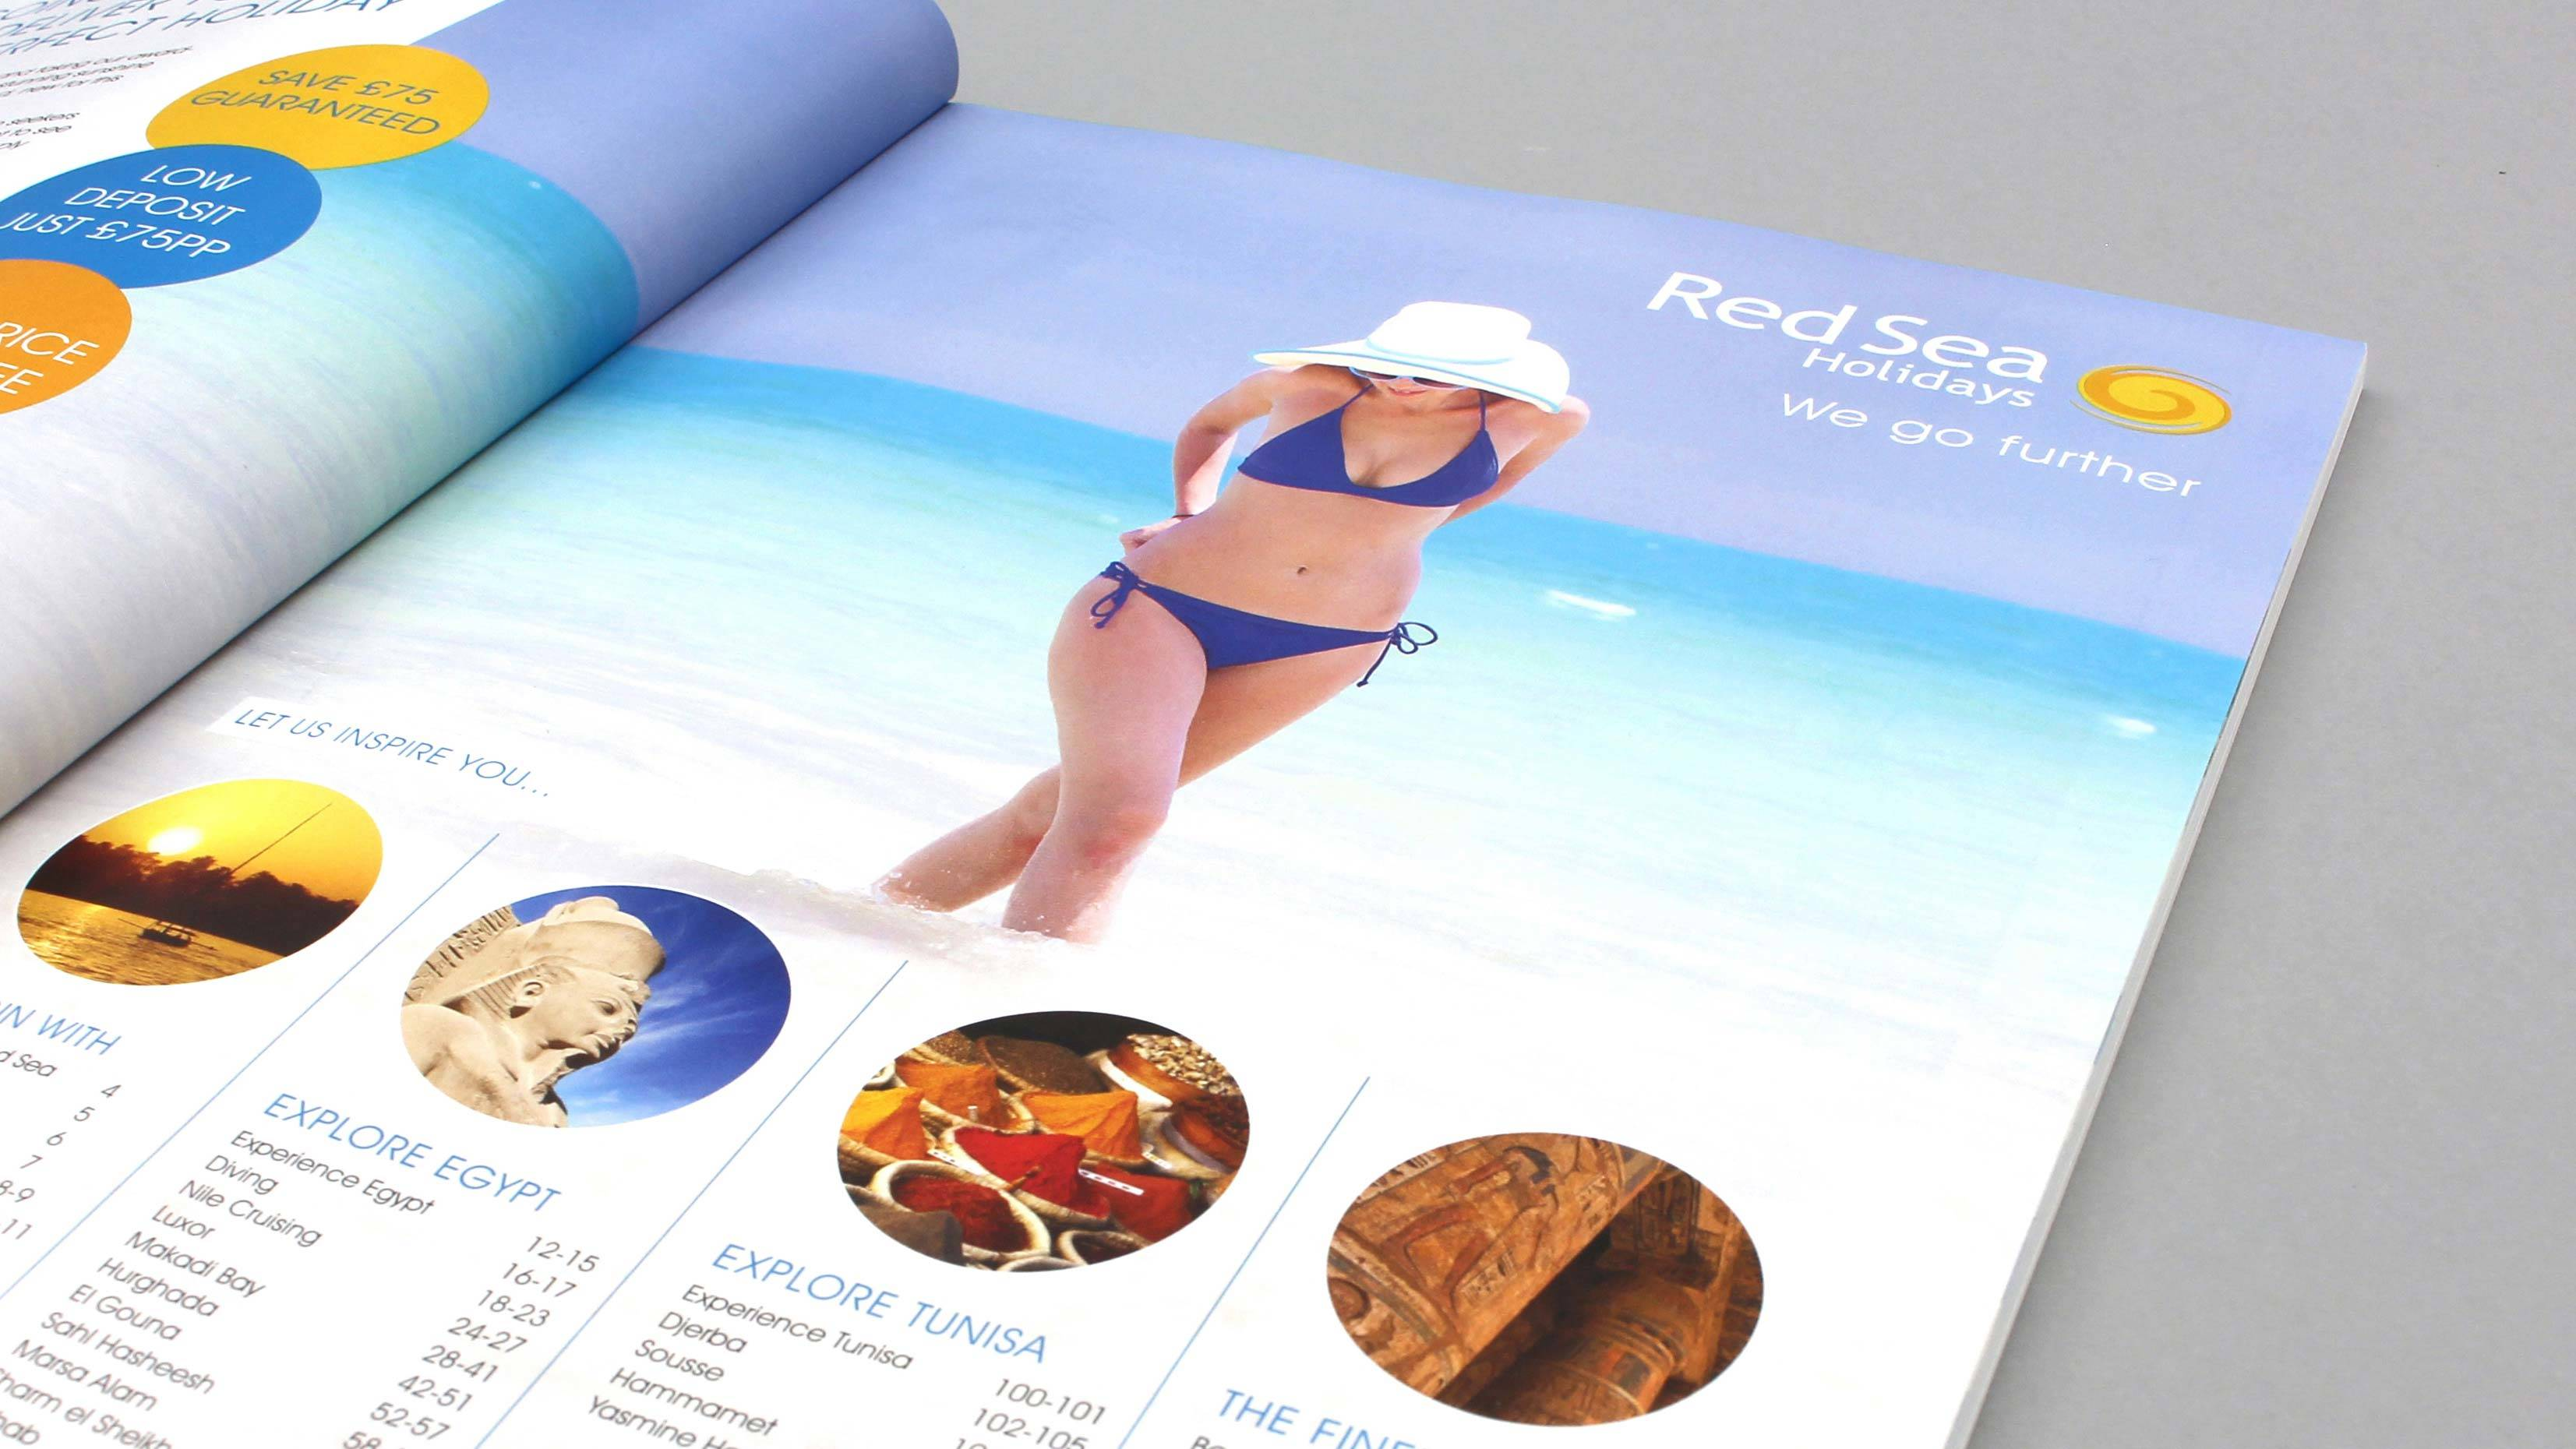 tour operator brochure design we go further intro pages red sea holidays